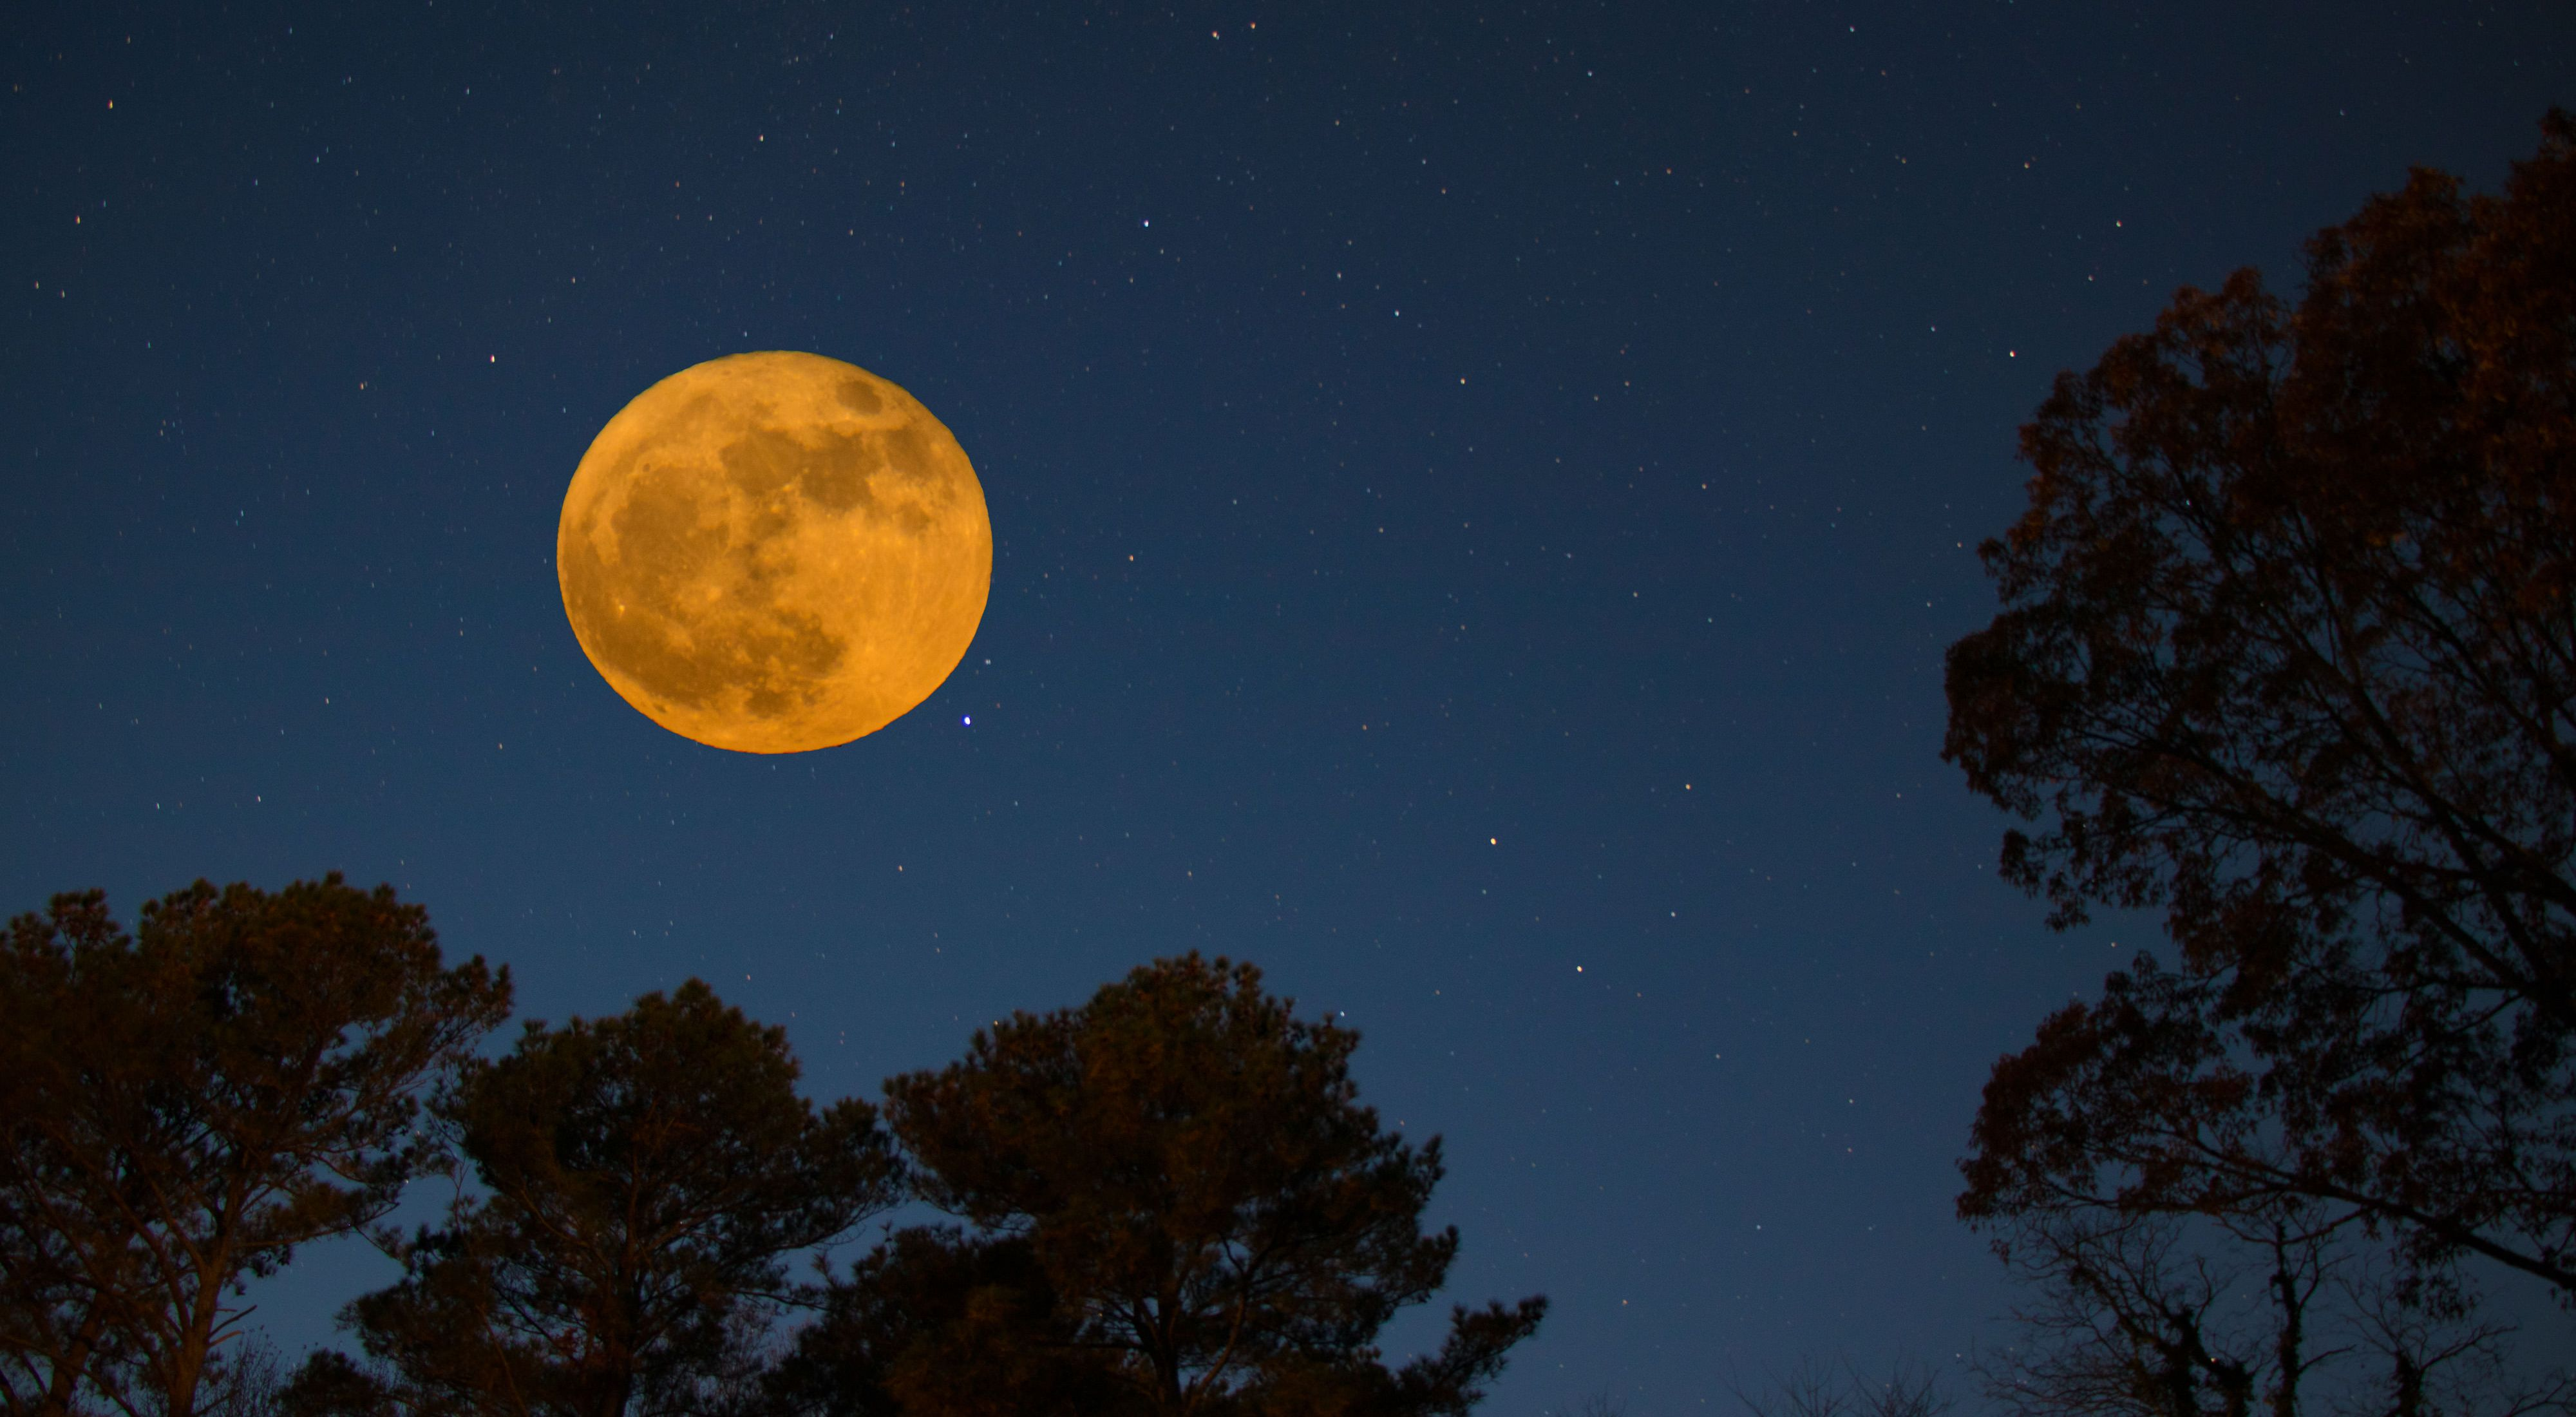 Moonrise over Brownsville Preserve. A bright, full moon in a dark sky above the silhouettes of trees.